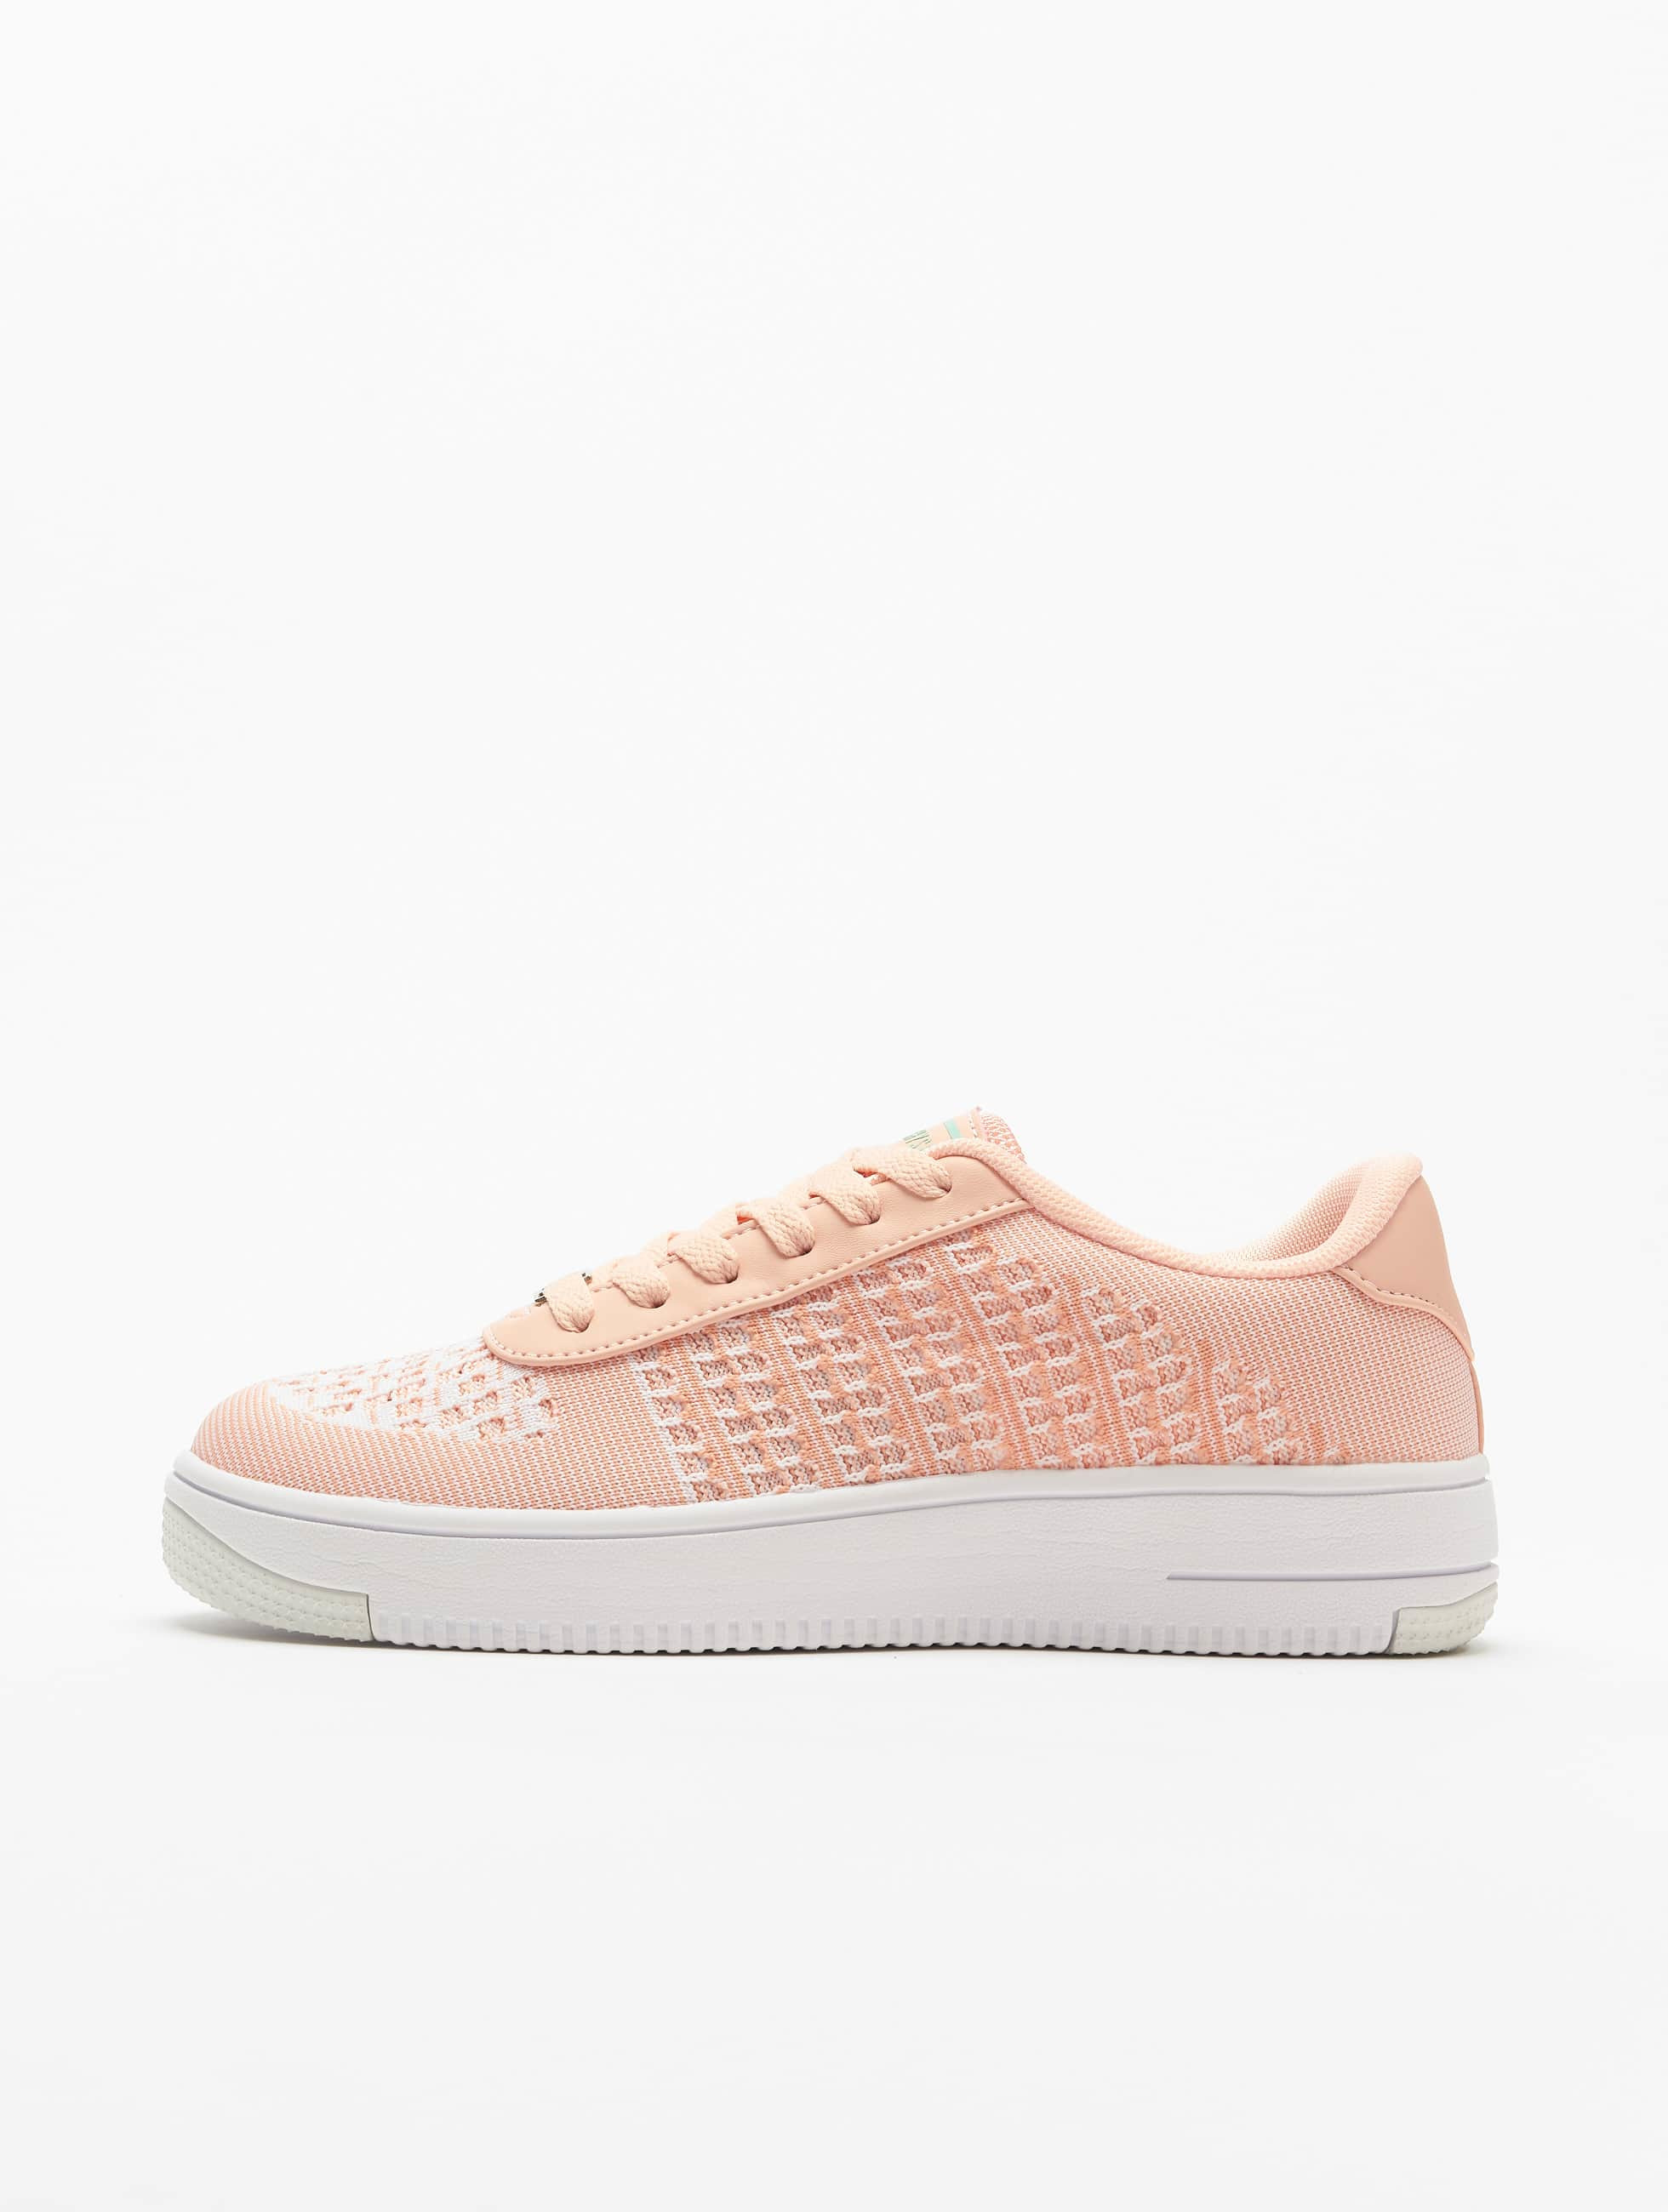 Just Rhyse / Sneakers Light Leaf in rose 41